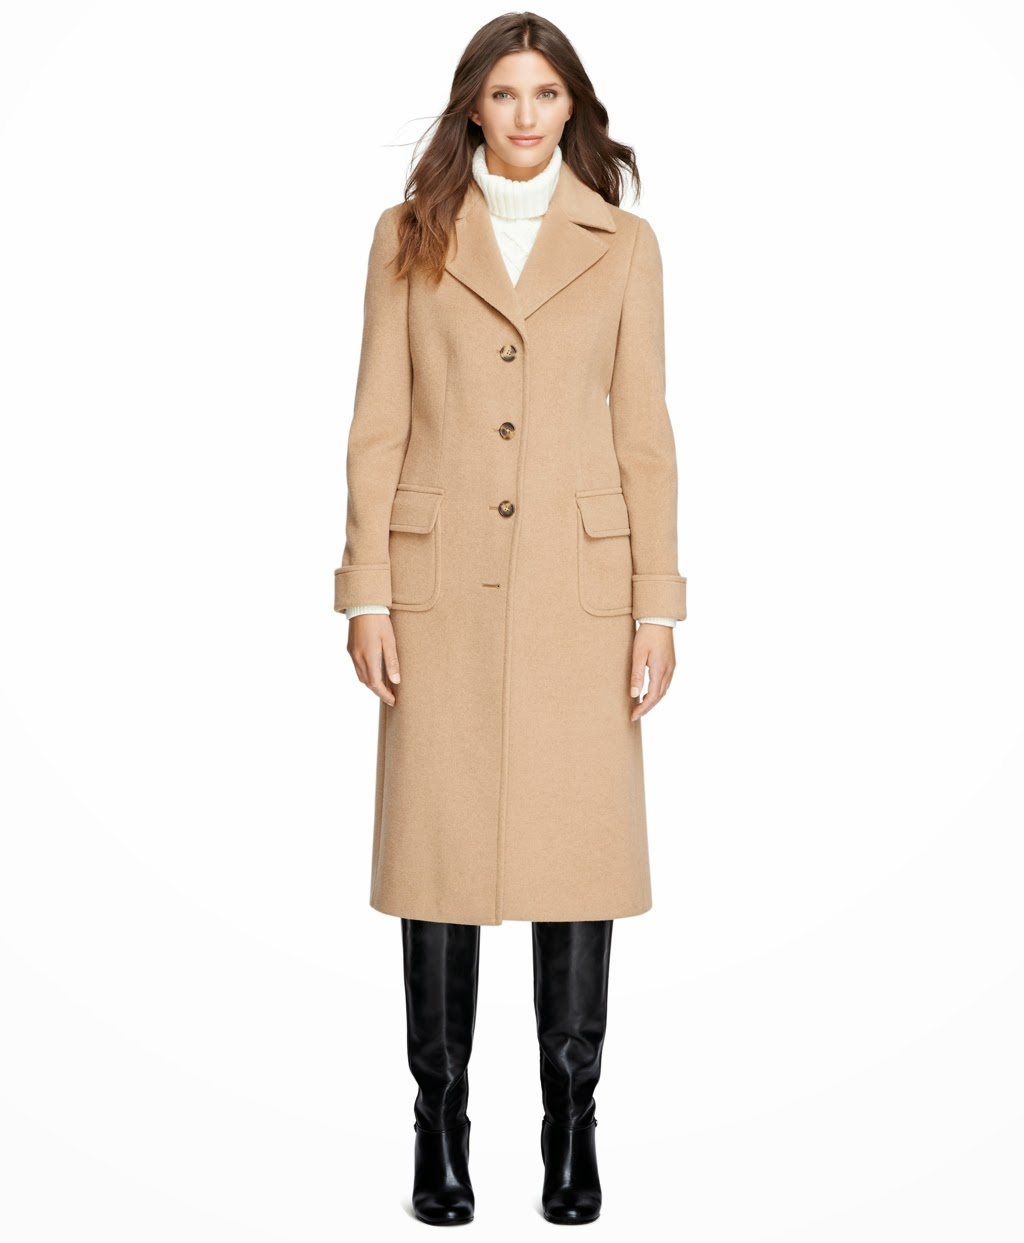 Womens polo coats